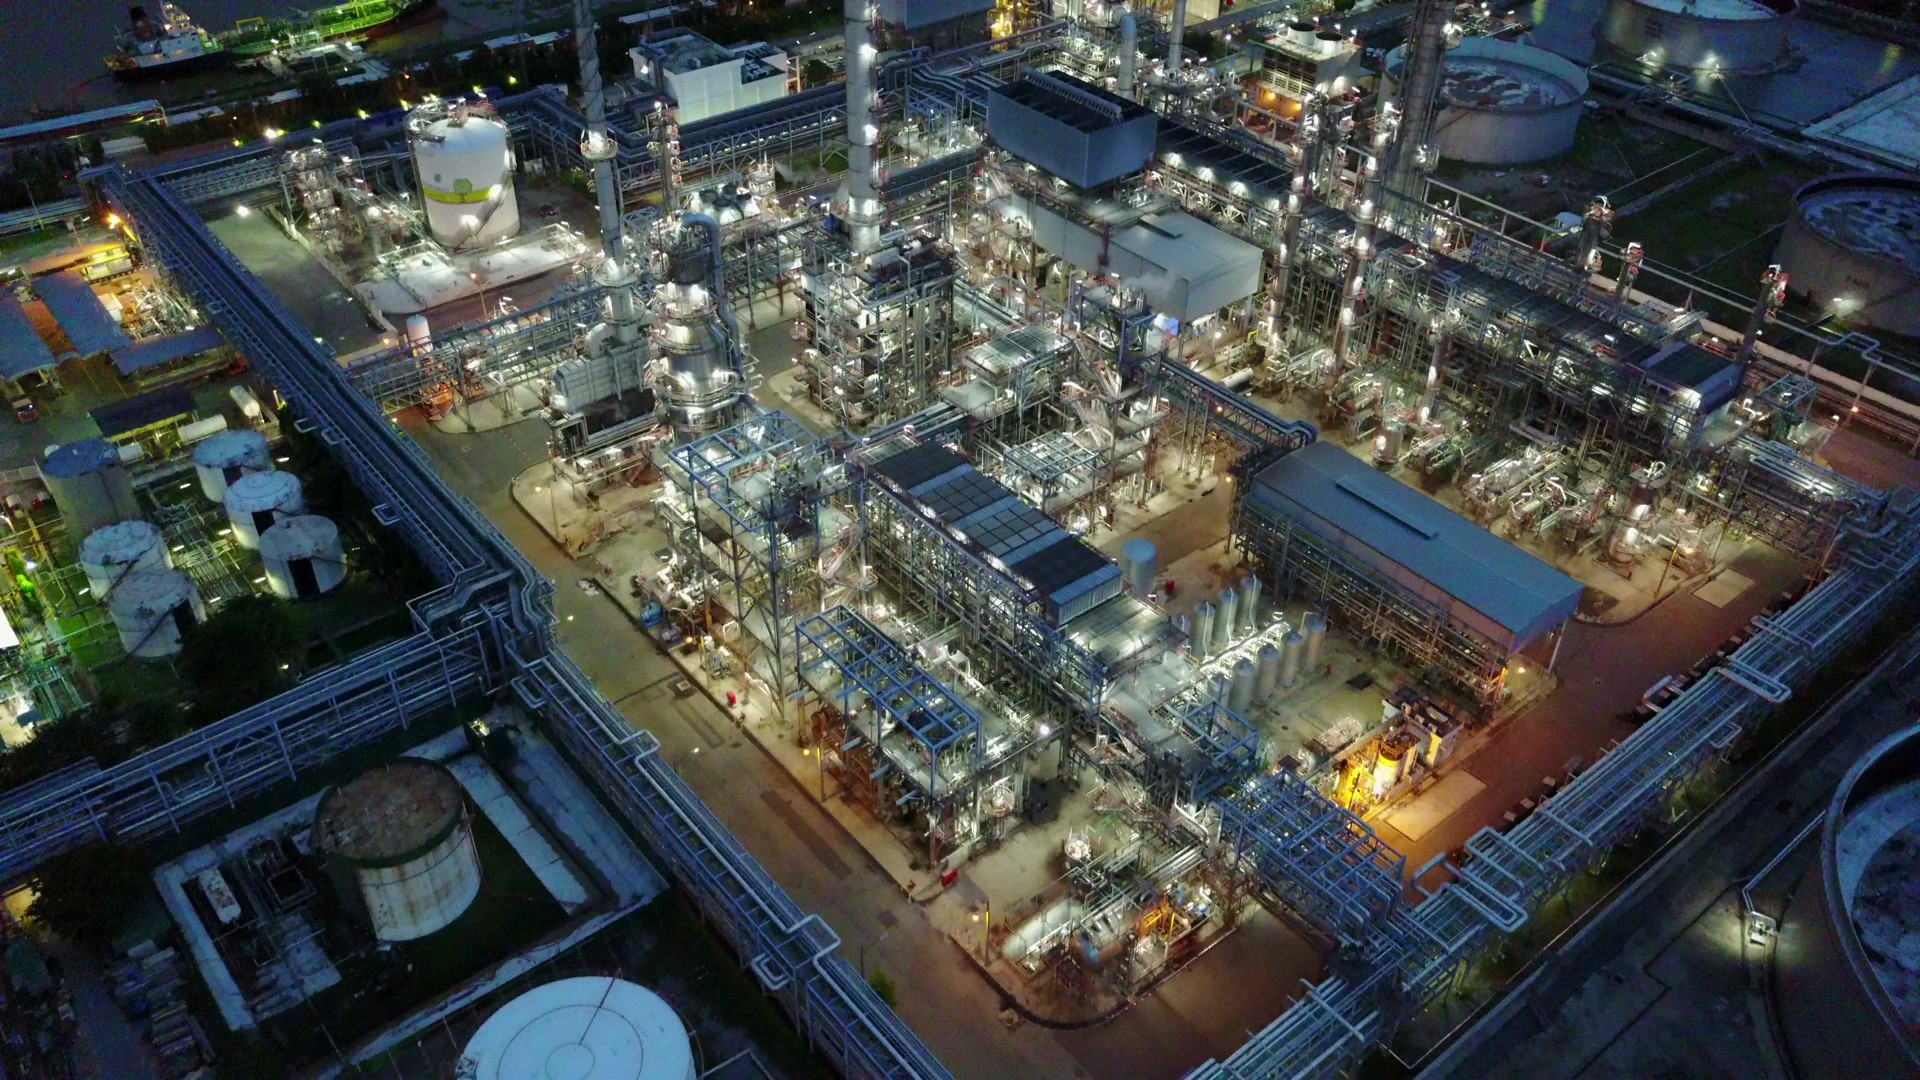 Refinery Aerial Video 28825315-hd_Moment